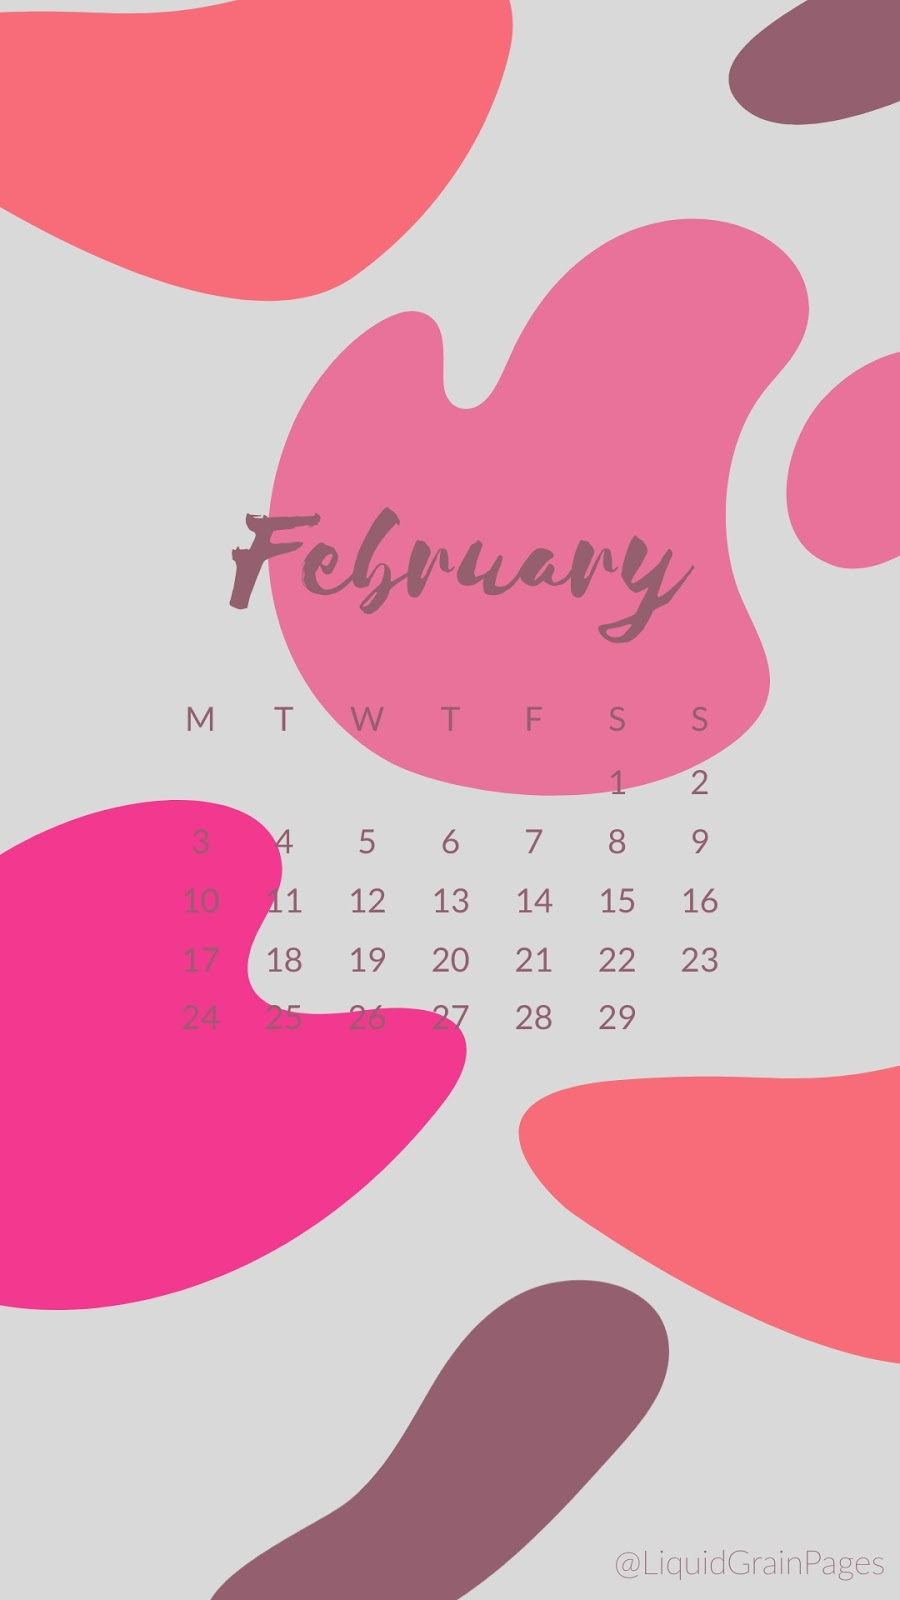 Free Phone Backgrounds - 2020 Calendar Liquid Grain Pages february